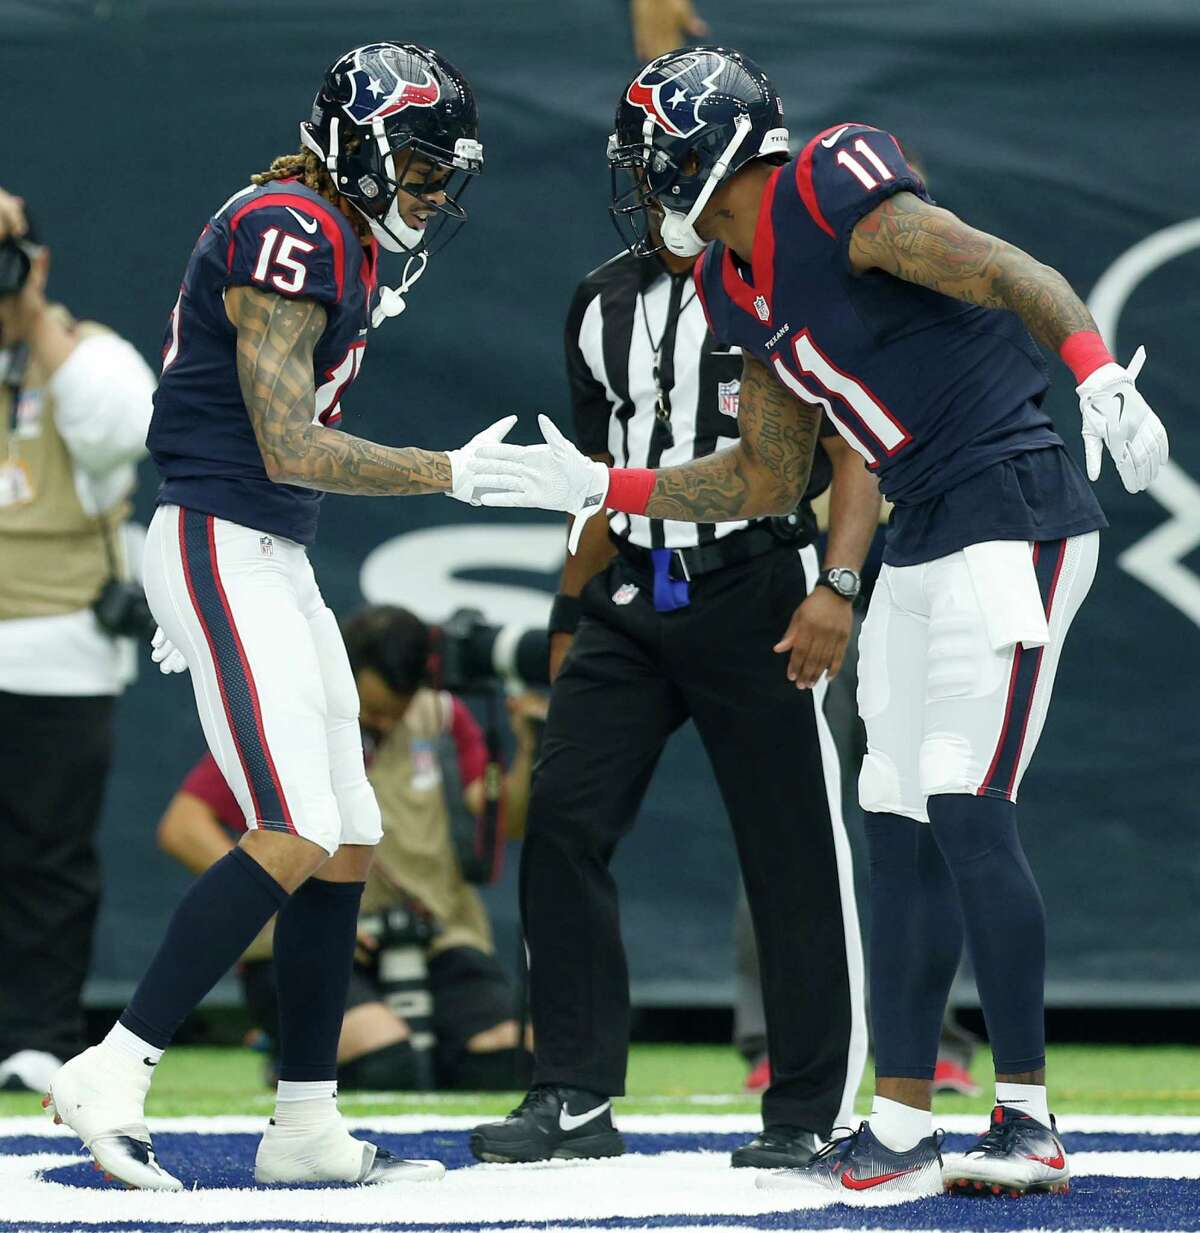 Wide receiver (5) In: 1. DeAndre Hopkins 2. Will Fuller 3. Braxton Miller 4. Jaelen Strong 5. Keith Mumphery The Texans have transformed their receiving corps into a young, talented group headlined by Hopkins' big-play capabilities, Fuller's rare speed and Miller's intuitiveness after shifting from quarterback at Ohio State. Strong provides a red-zone threat. Mumphery excels on special teams. On the bubble: Cecil Shorts, Wendall Williams, Quenton Bundrage. Shorts accepted a pay cut this offseason and is a respected leader in the locker room. Despite that, the Texans could go with Mumphery for special-teams considerations. It's not a clear-cut decision even factoring in Shorts' experience and affordable salary.